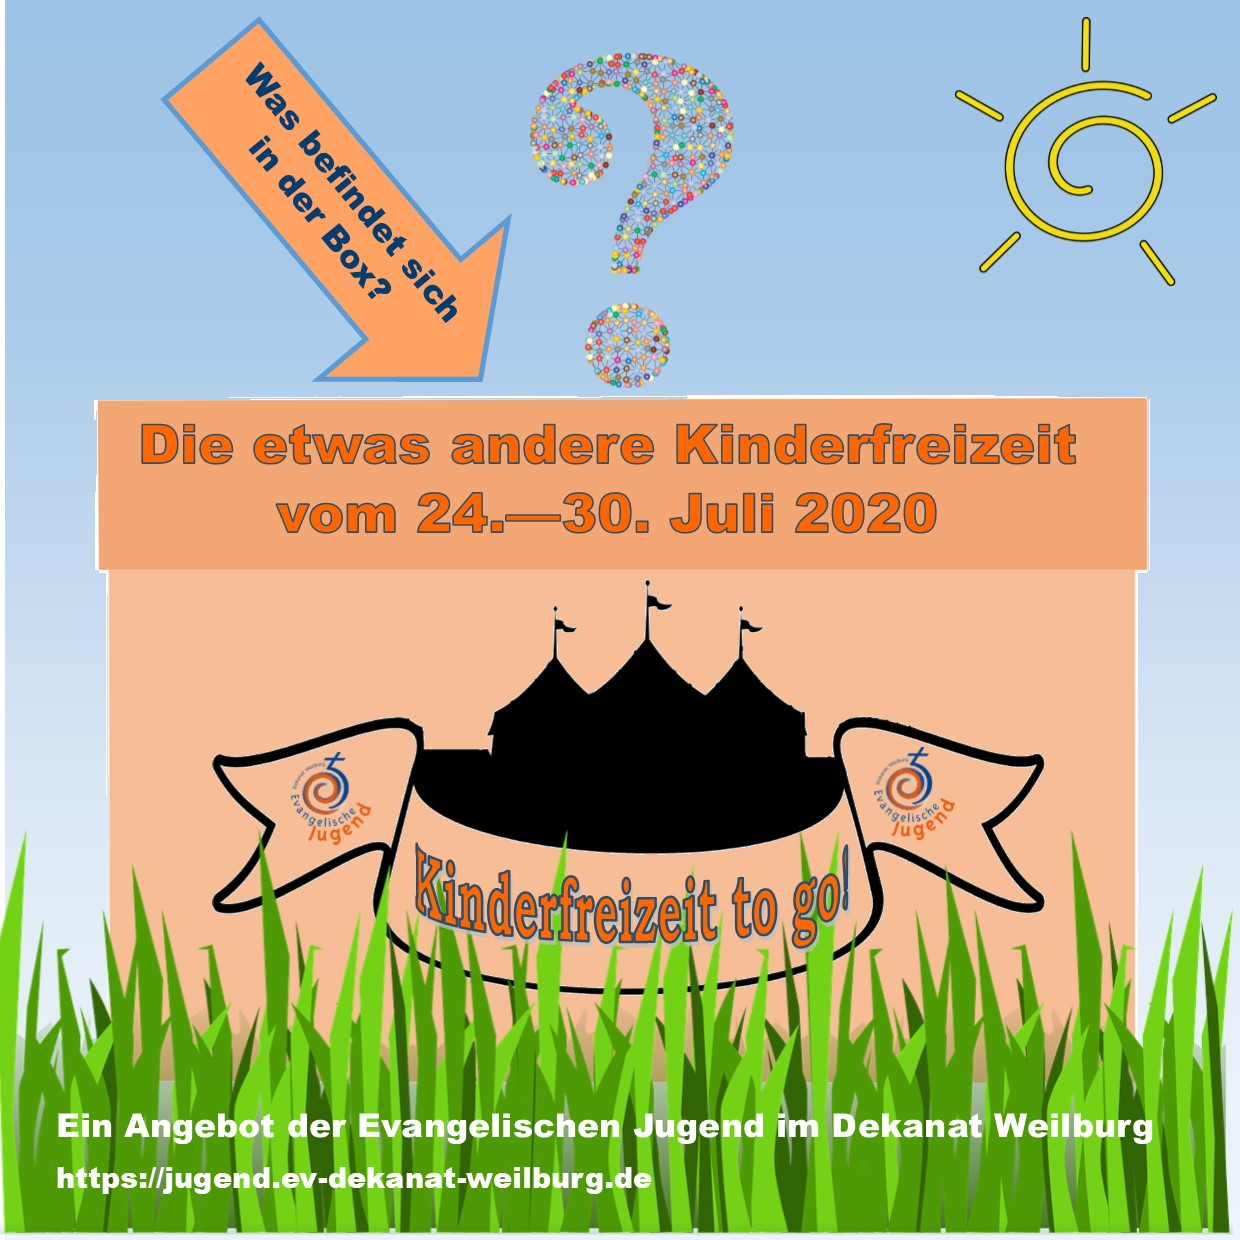 Kinderfreizeit to go 2020 Flyer